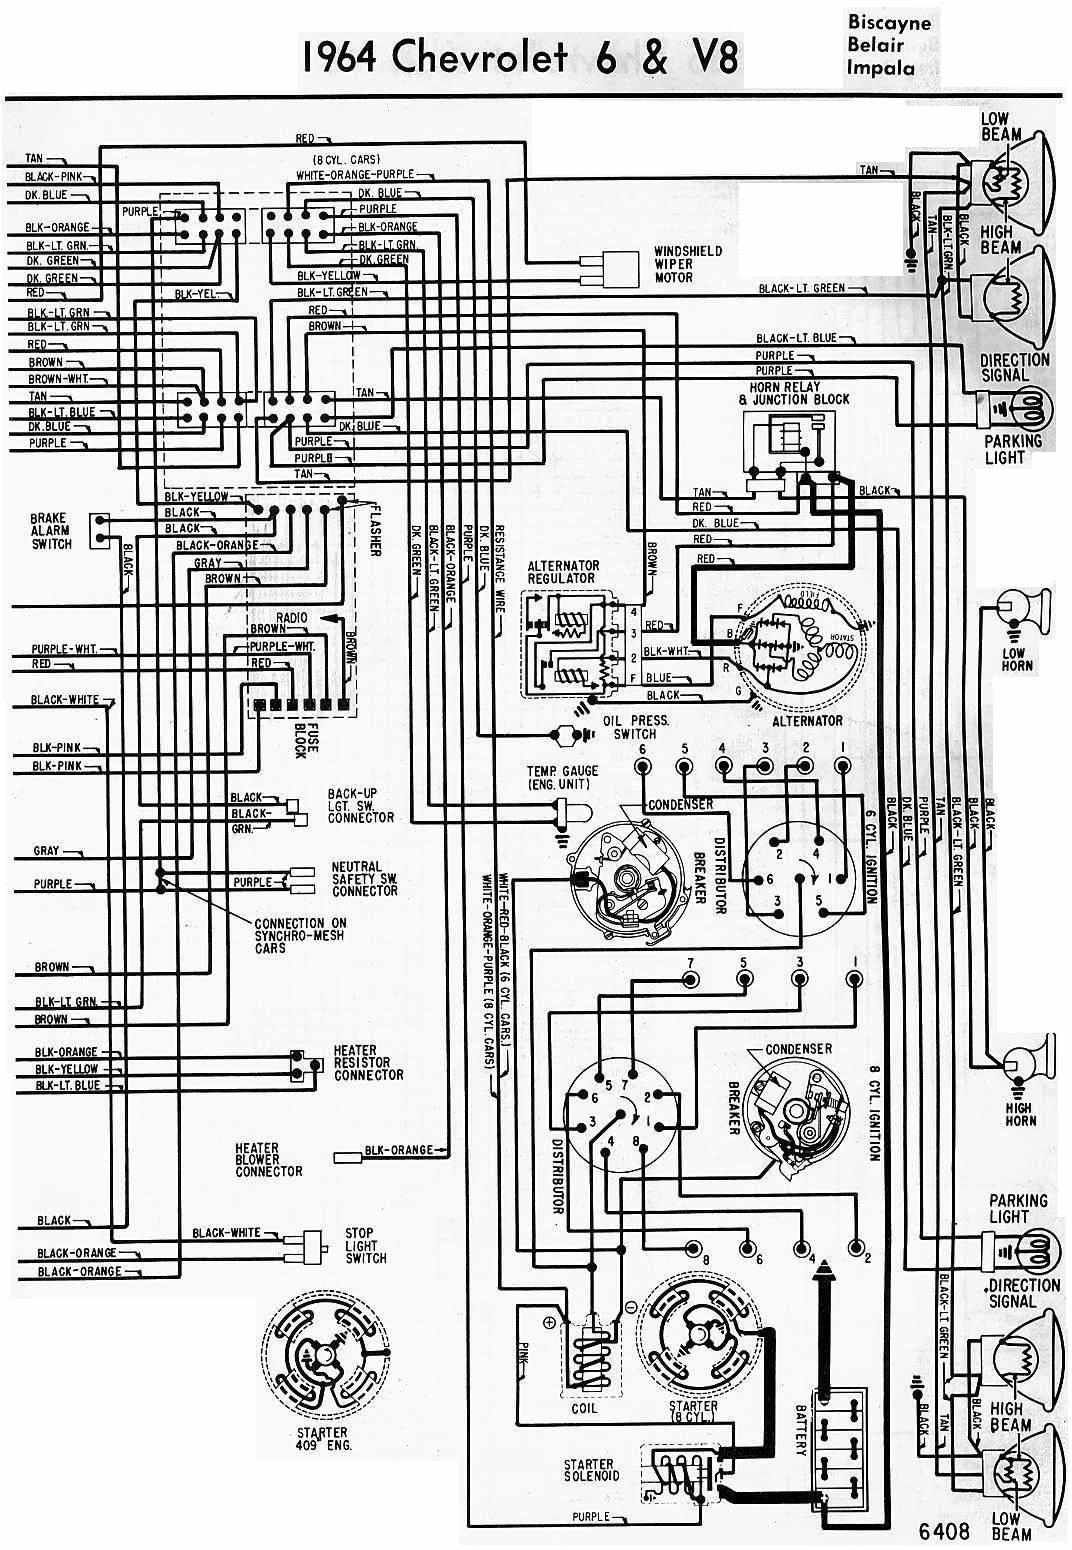 electrical wiring diagram of 1964 chevrolet 6 and v8